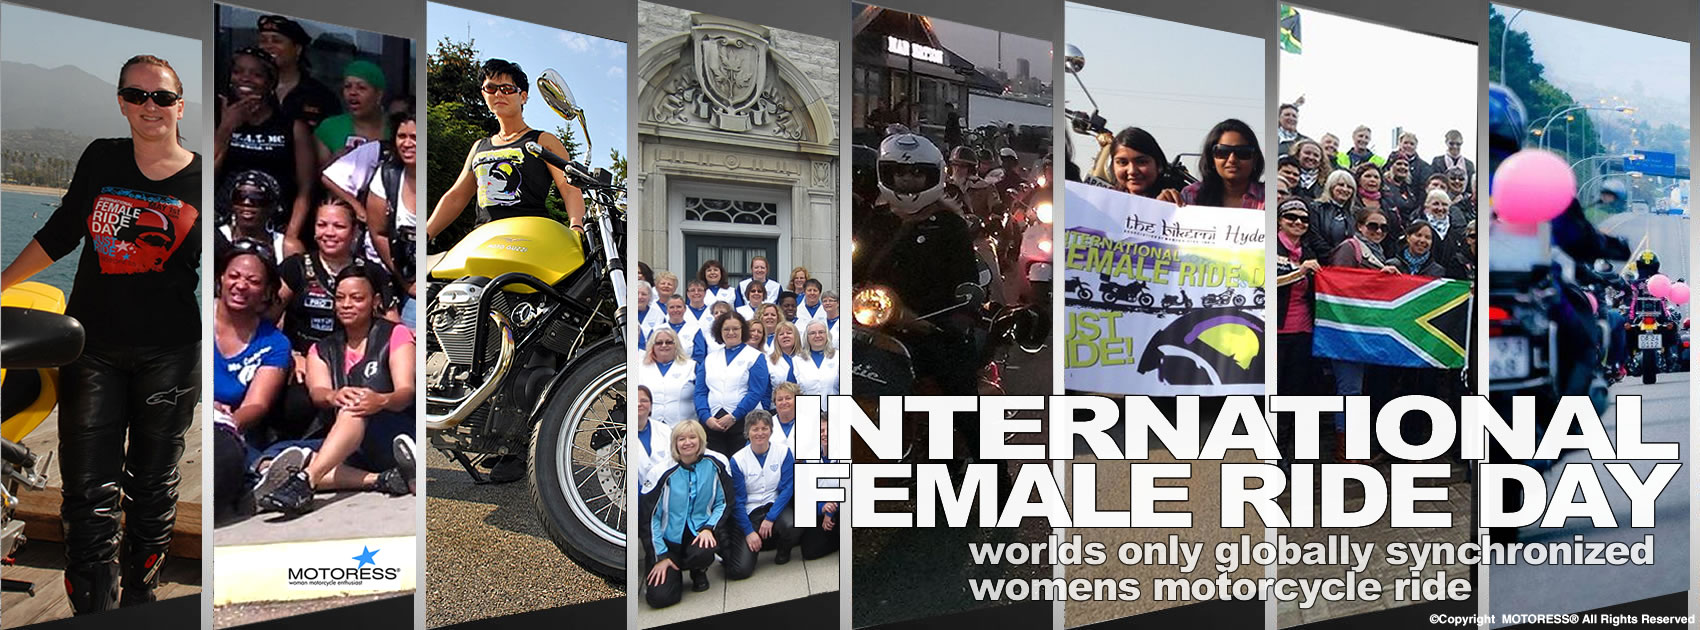 Female Ride Day 2016-2